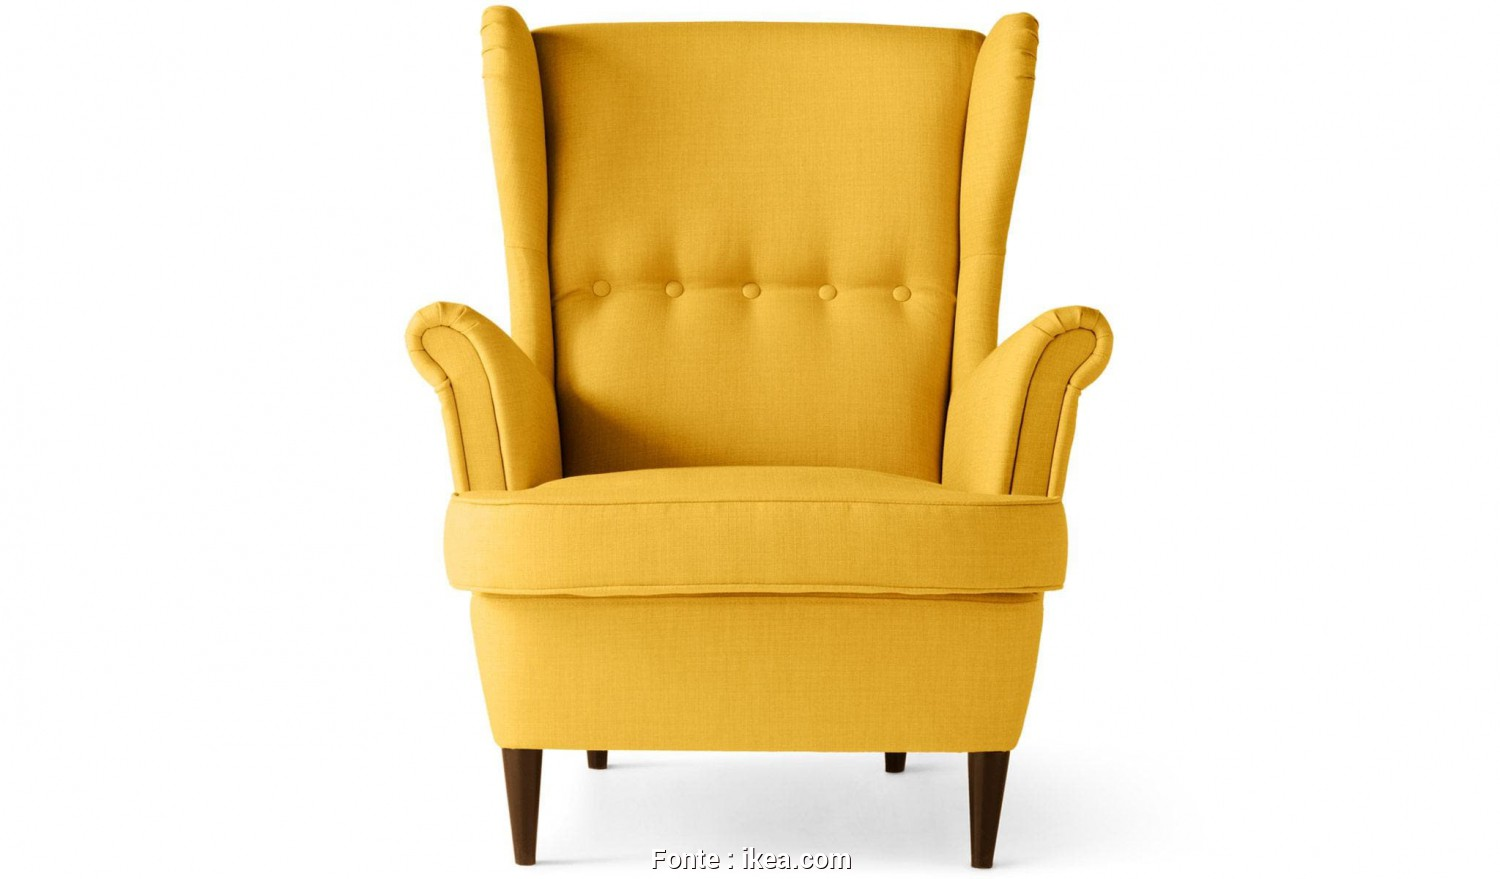 Poltrone Vintage Ikea, Minimalista At IKEA We Have, Fabric Armchair Of Your Dreams. There, Colours, Sizes